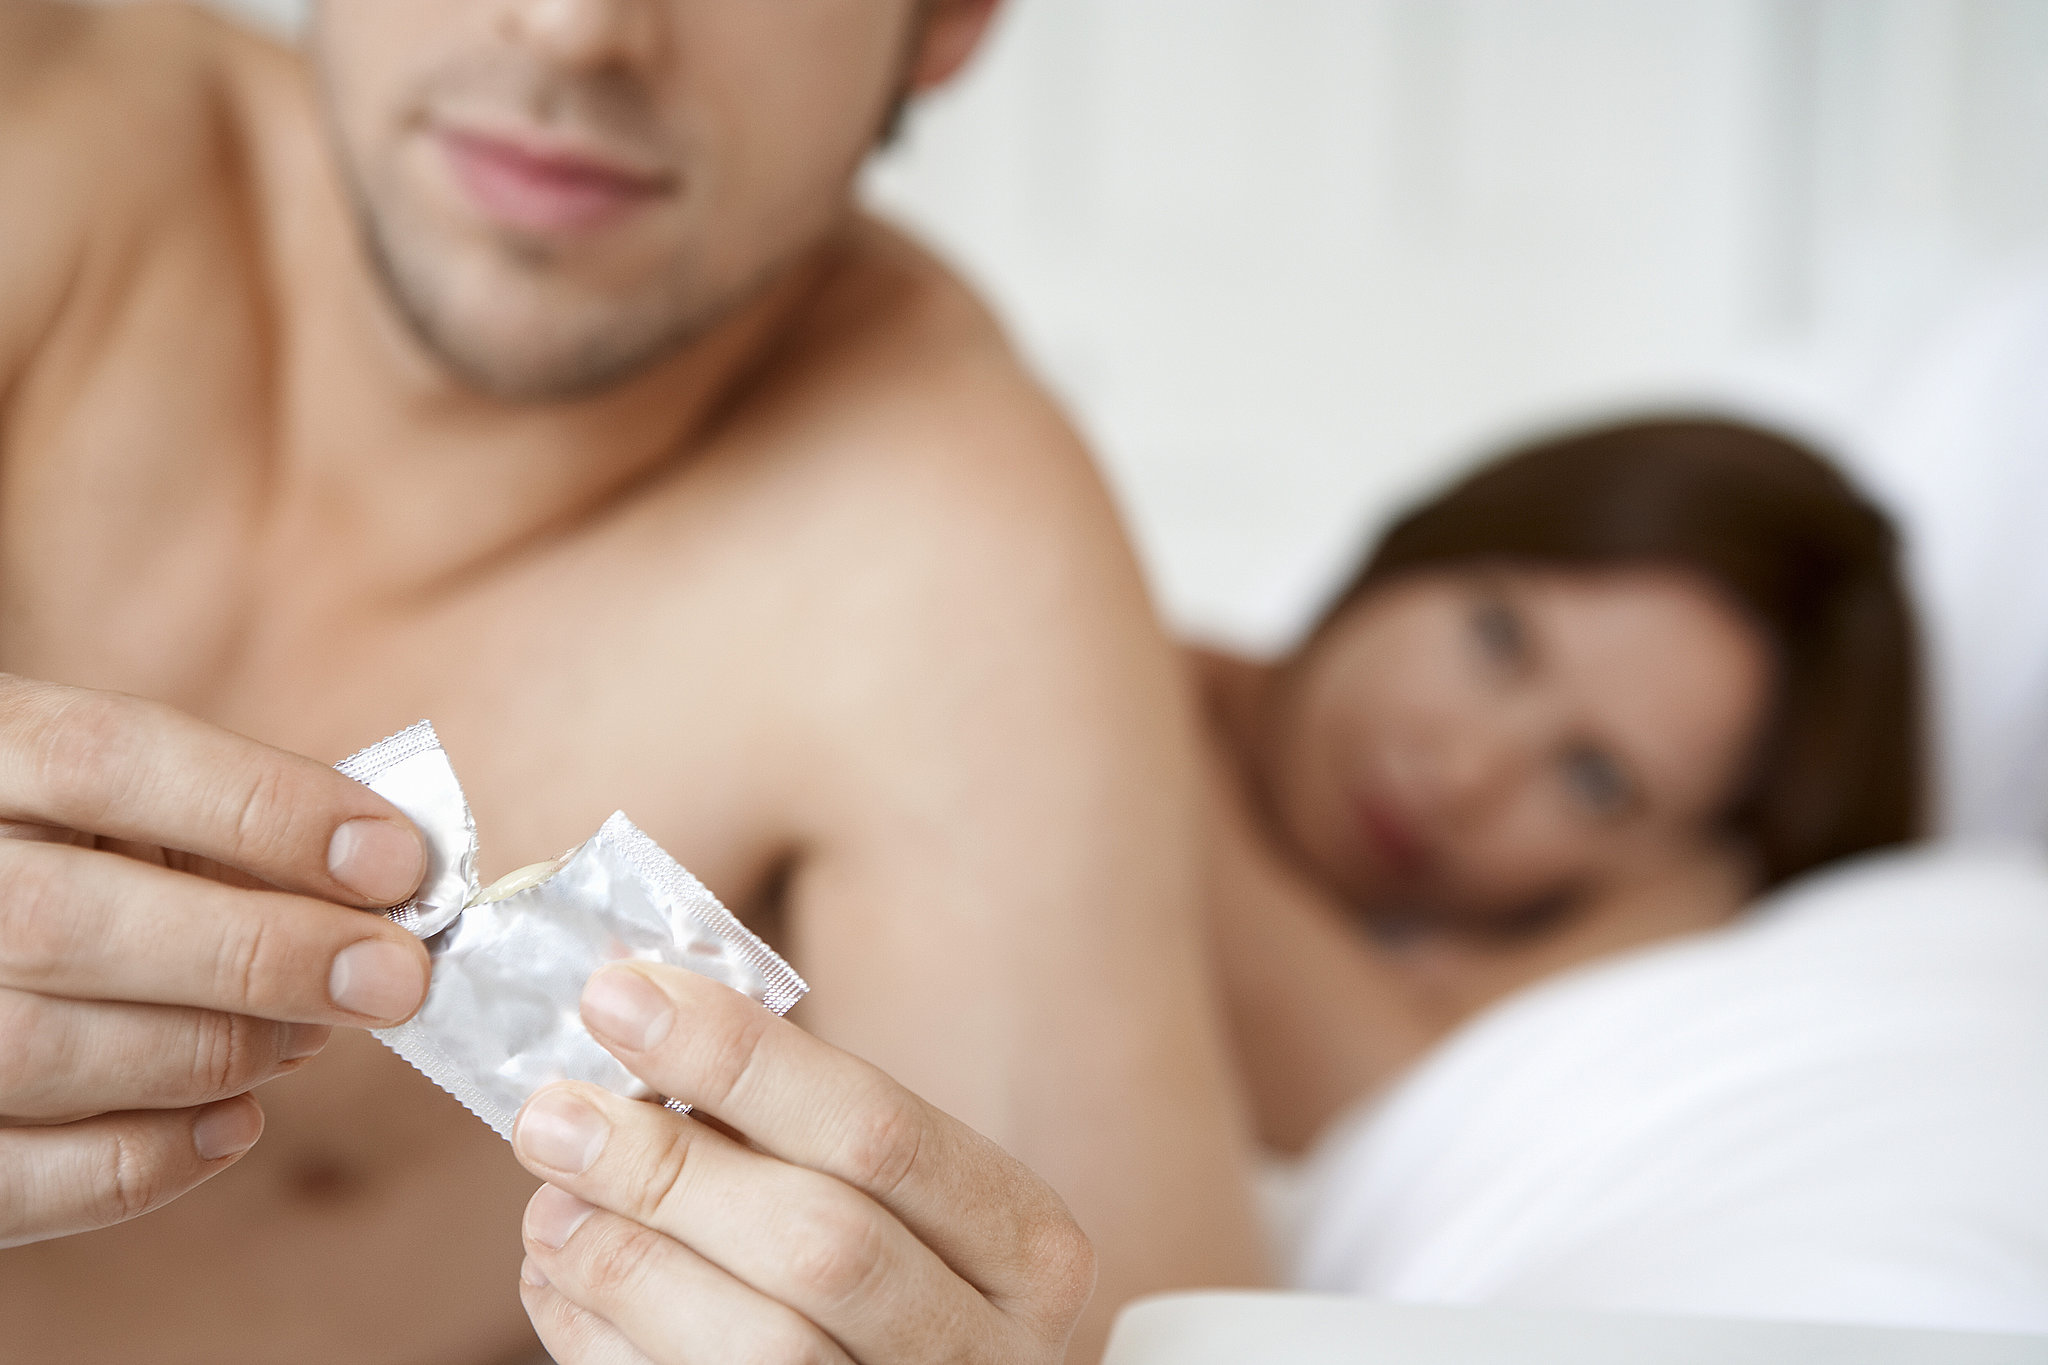 Can you get pregnant if you have on a condom - Answer